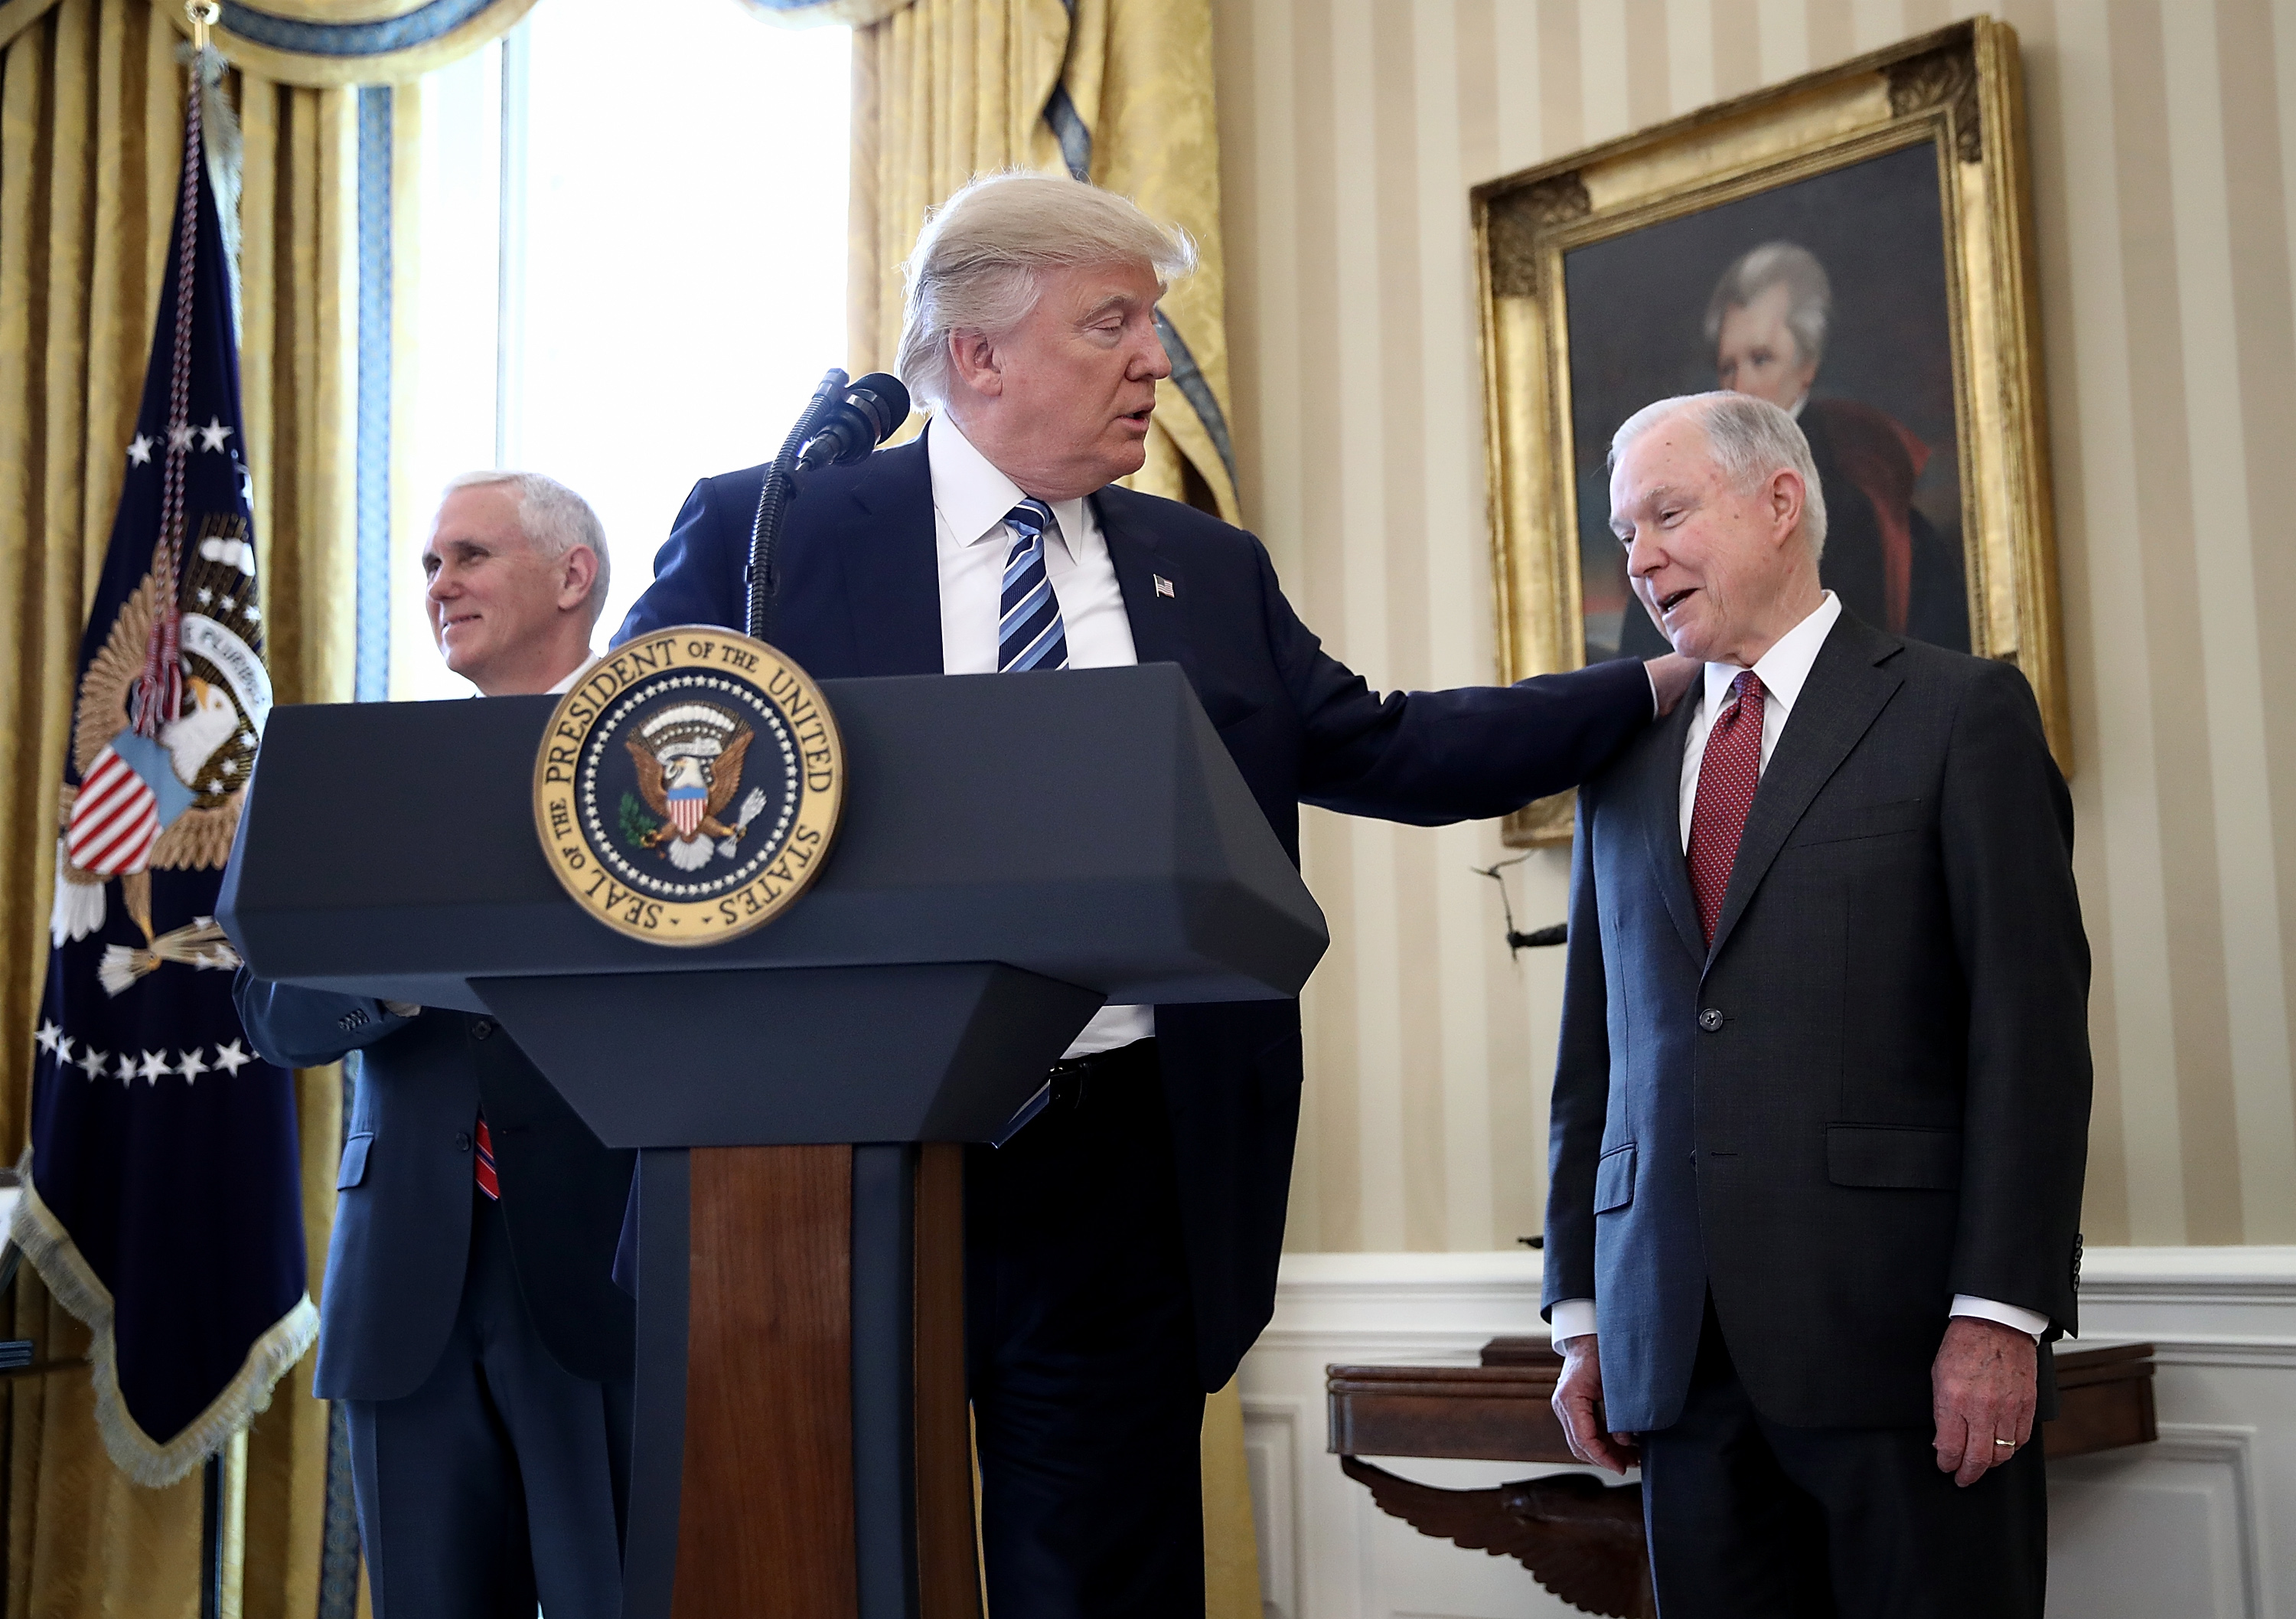 The Trump White House is really hanging Jeff Sessions out to dry